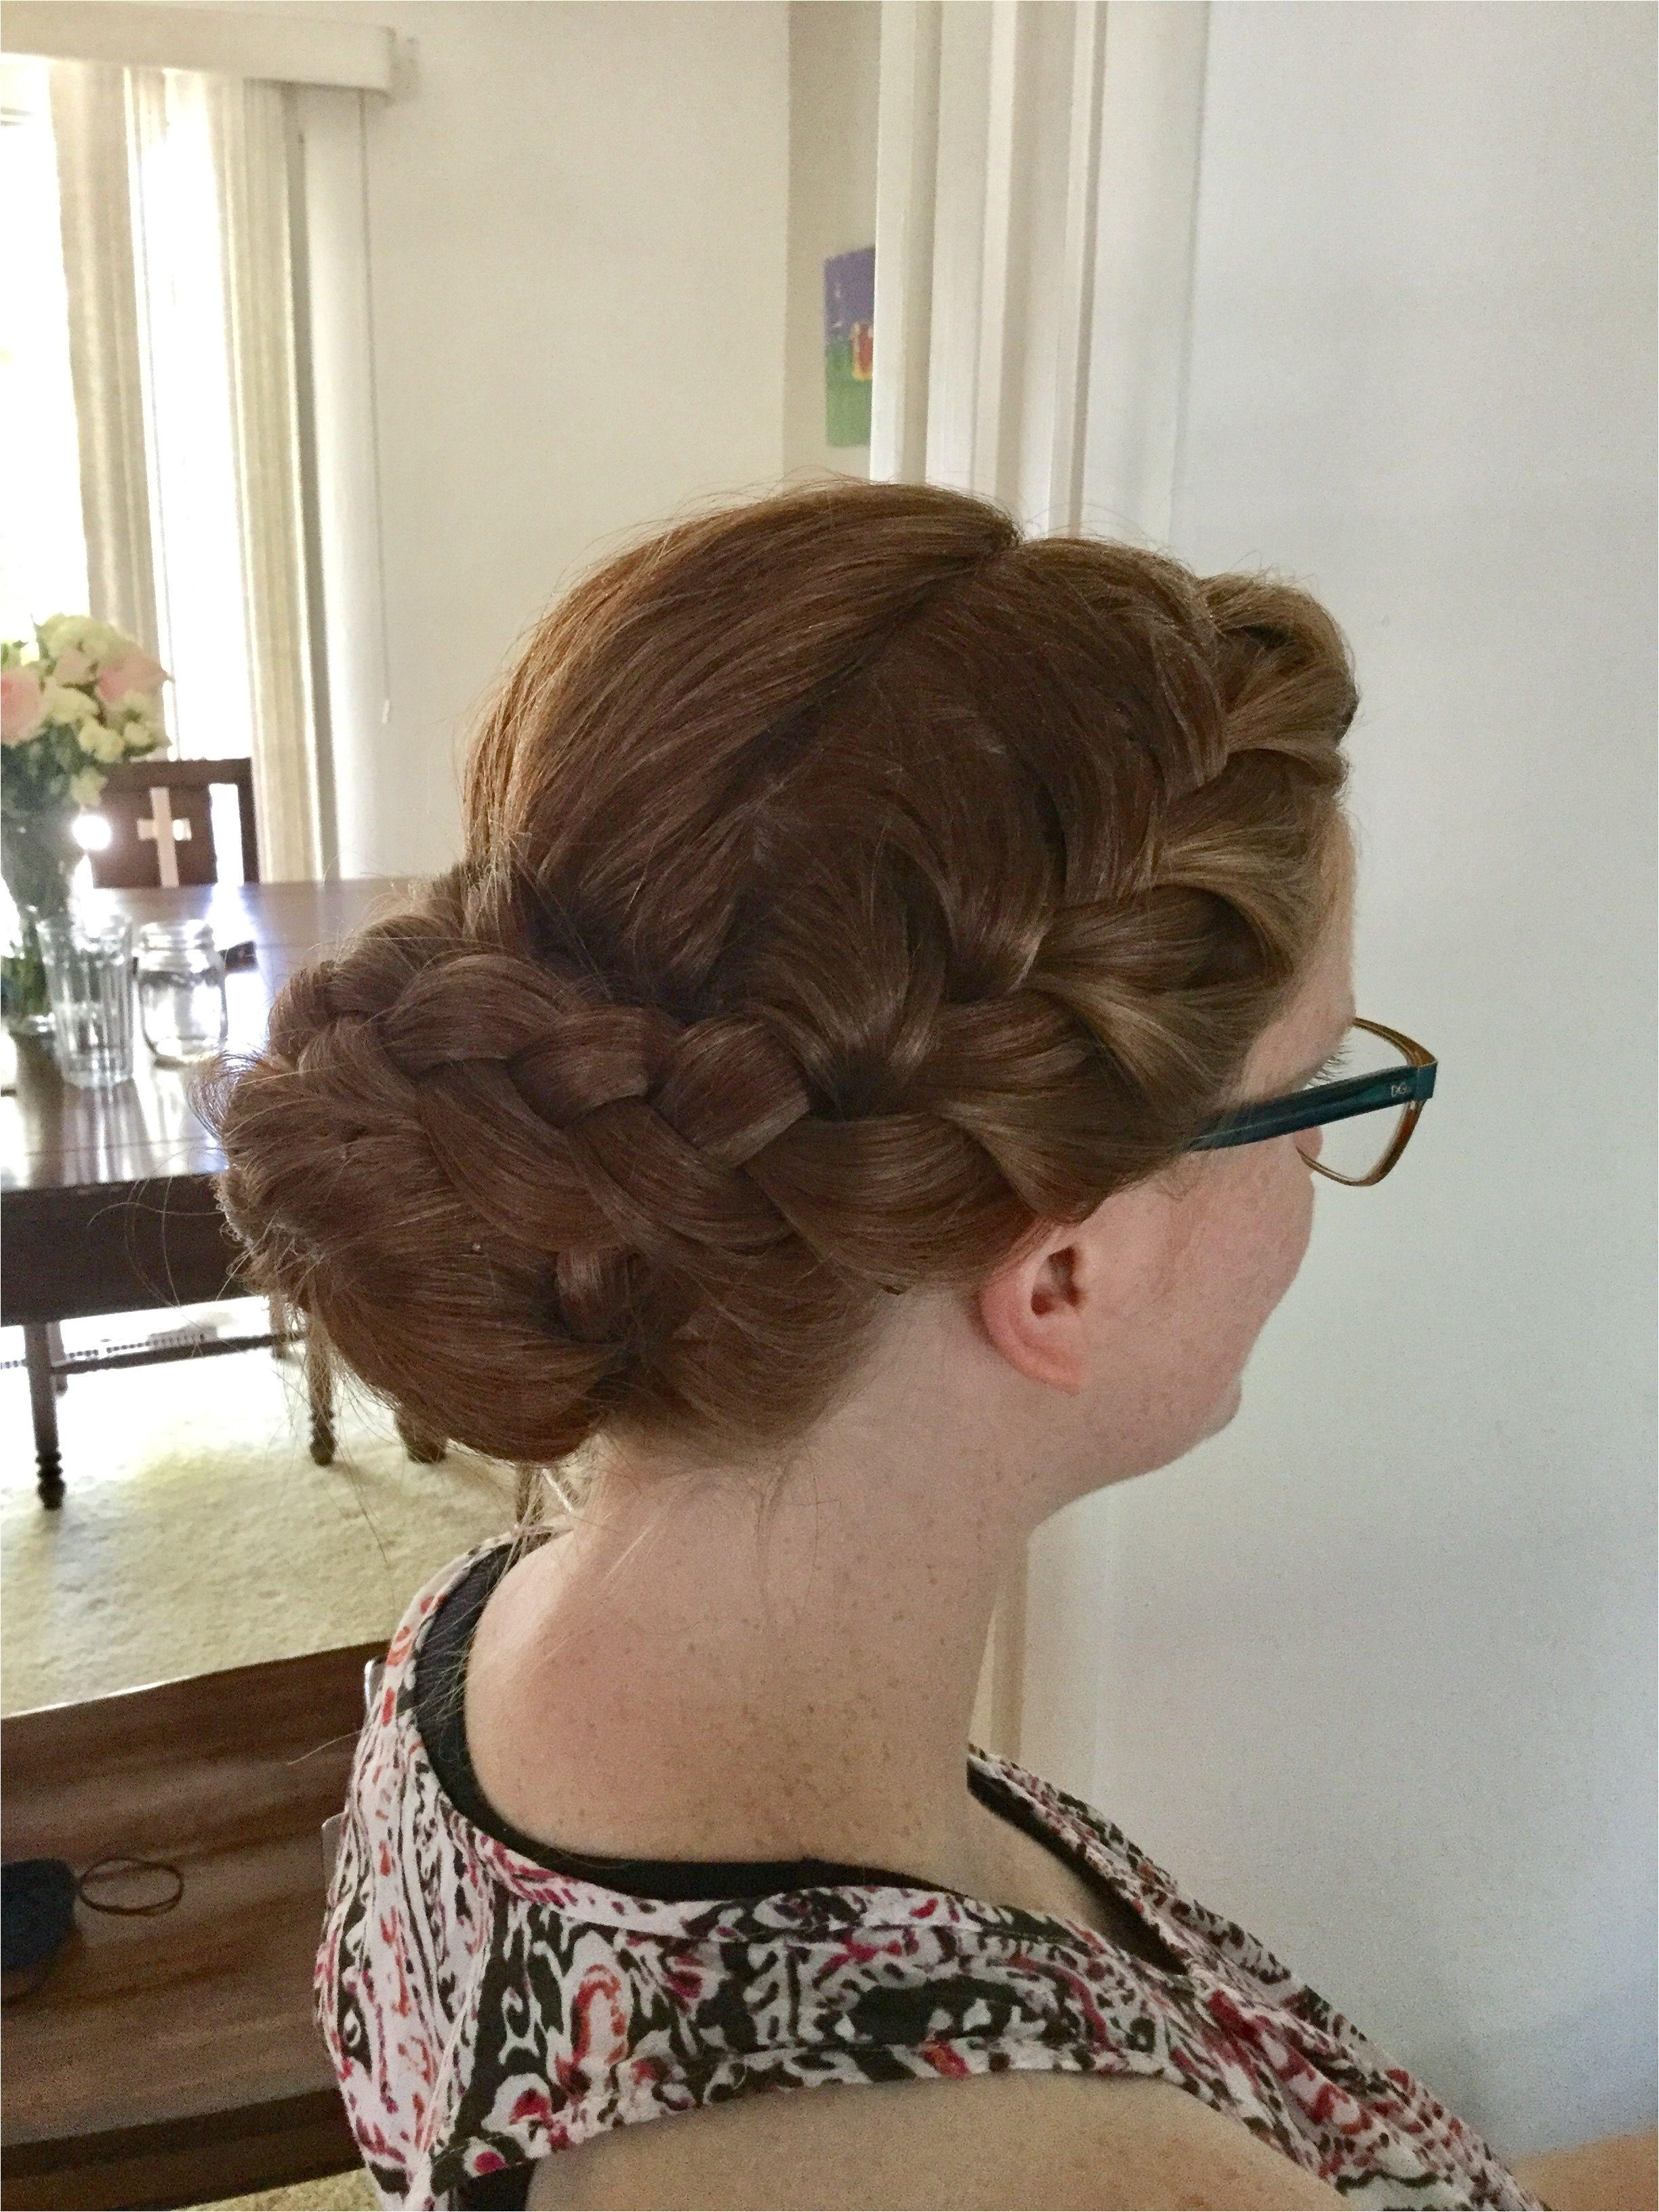 So Cal summer wedding hairstyle from Pinterest done by Jessie sister